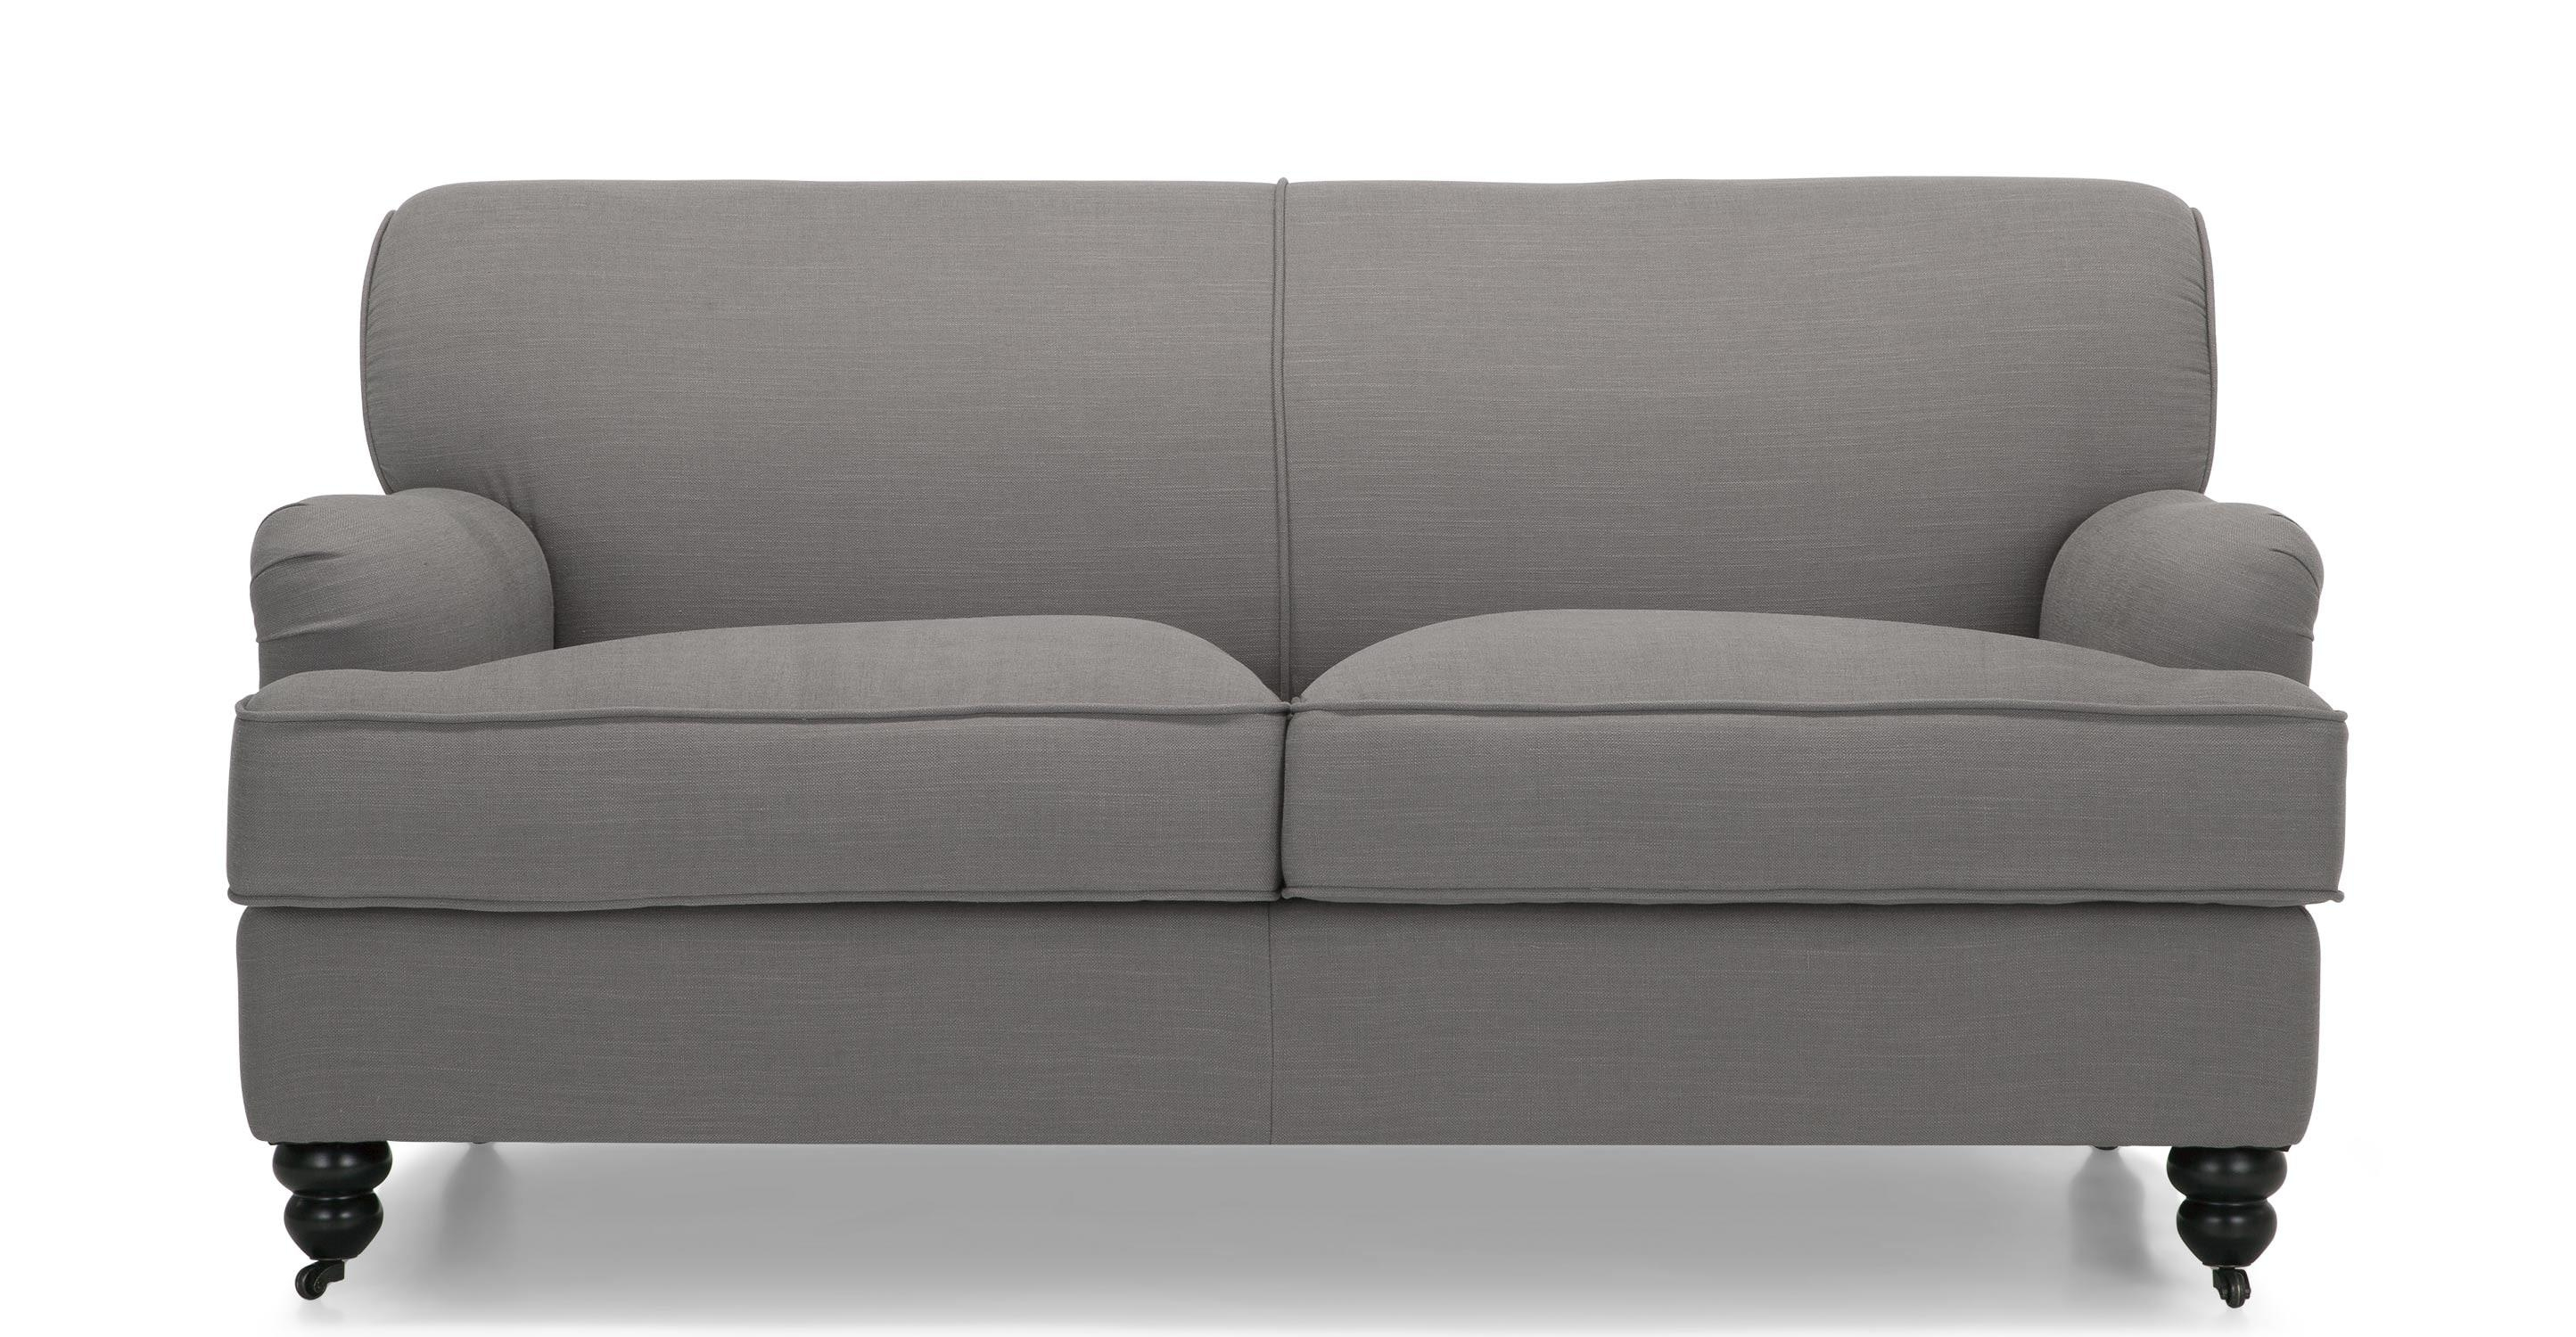 Sofas Center : Stupendous Small Seater Sofa Image Concept Sofas With Regard To Small 2 Seater Sofas (View 8 of 20)